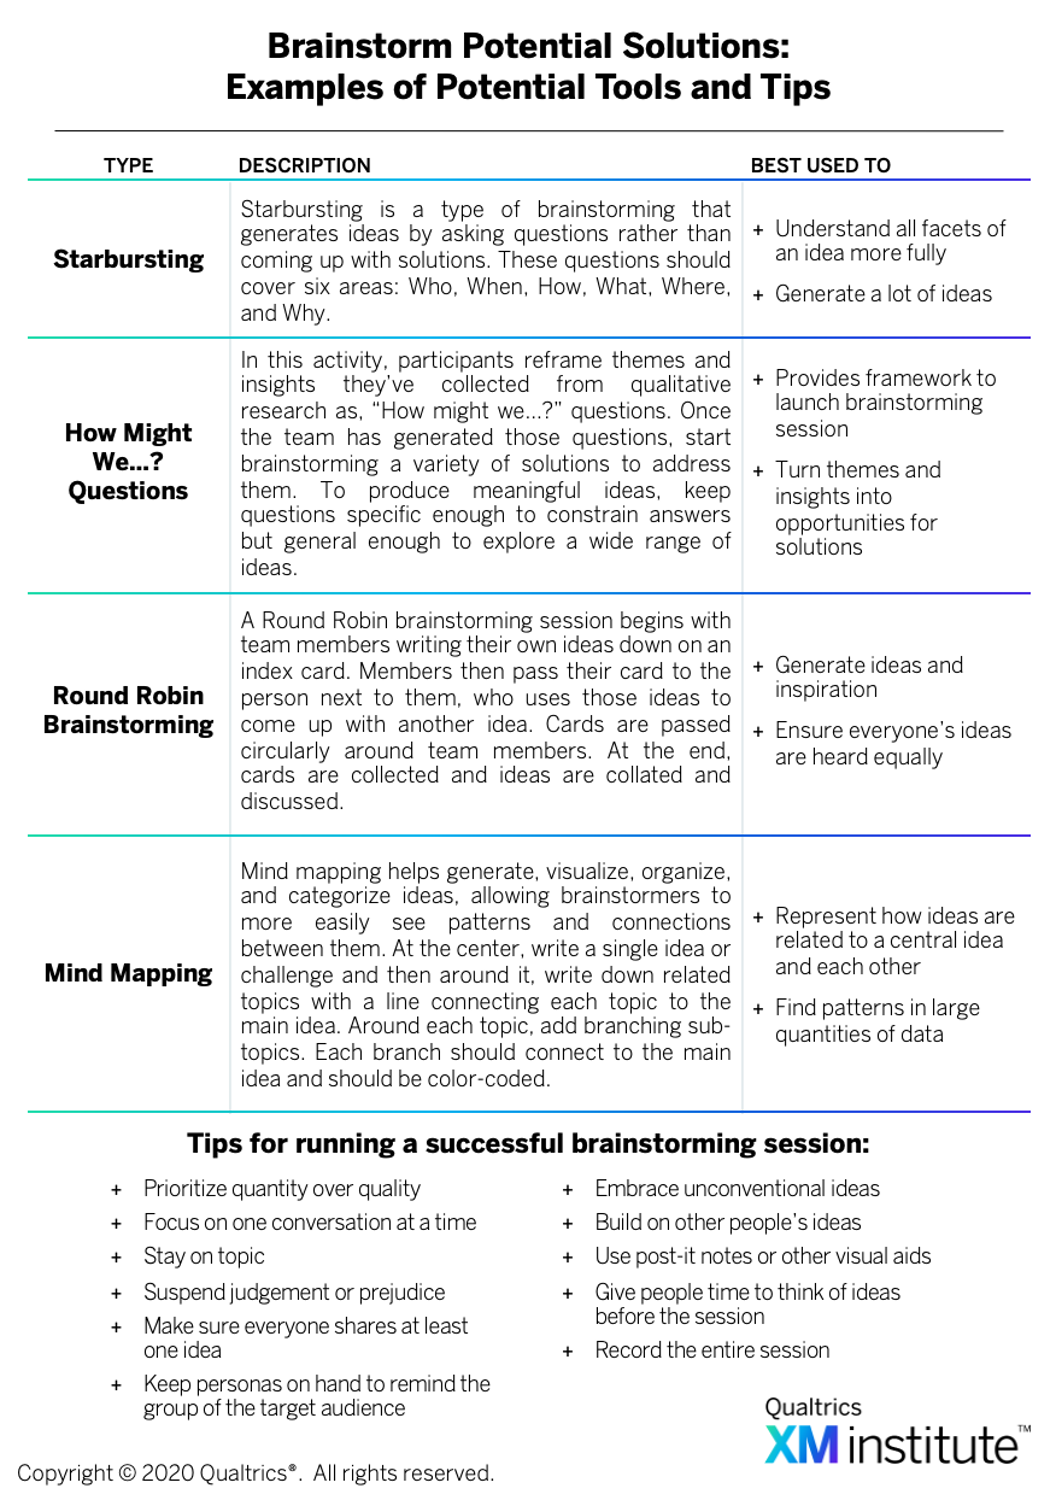 Figure 6: Brainstorm Potential Solutions: Examples of Potential Tools and Tips